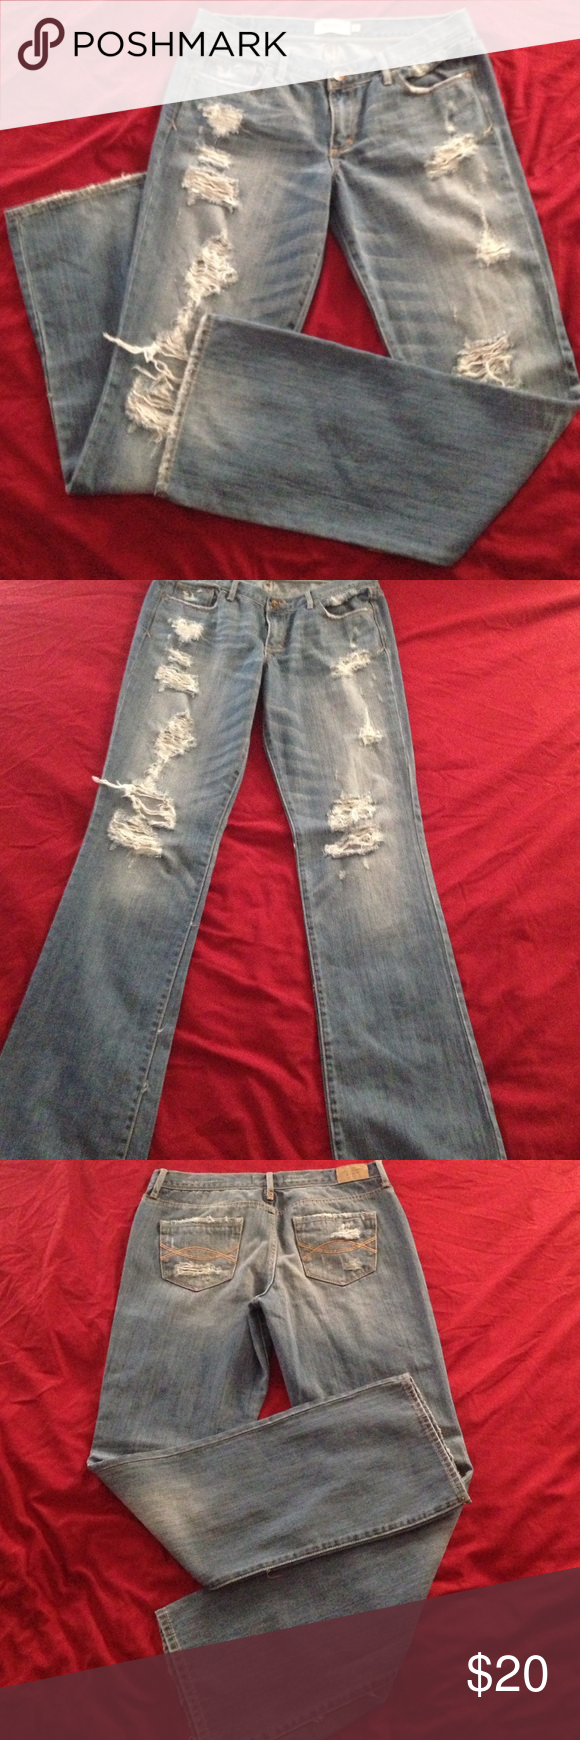 Abercrombie & Fitch Jeans Used Abercrombie & Fitch Destroyed denim jeans size 8.  32x32. These jeans are in good shape. 100% cotton. Abercrombie & Fitch Jeans Boot Cut